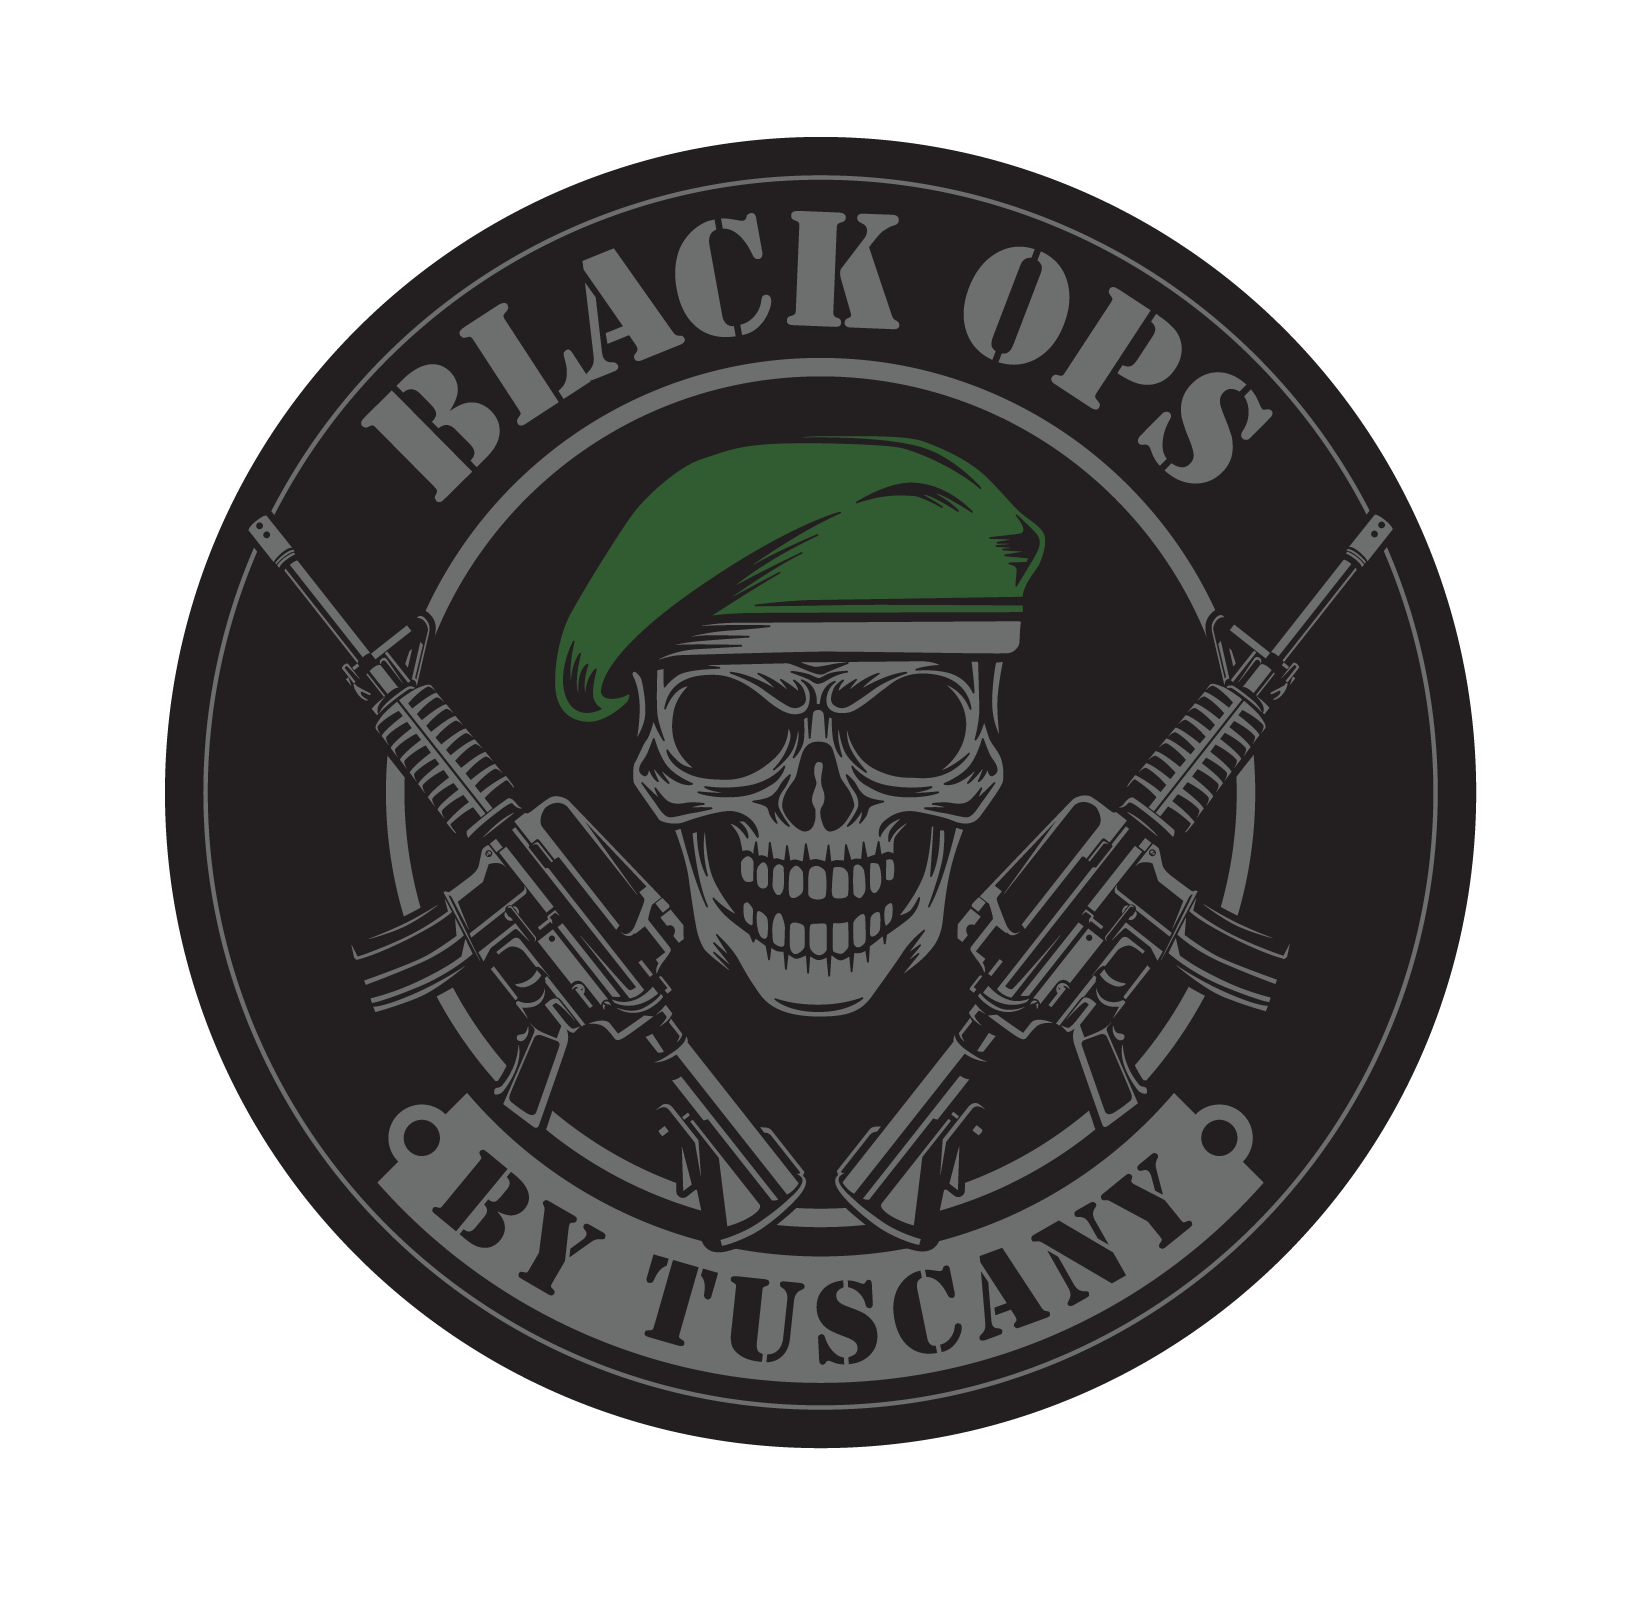 Black Ops by Tuscany